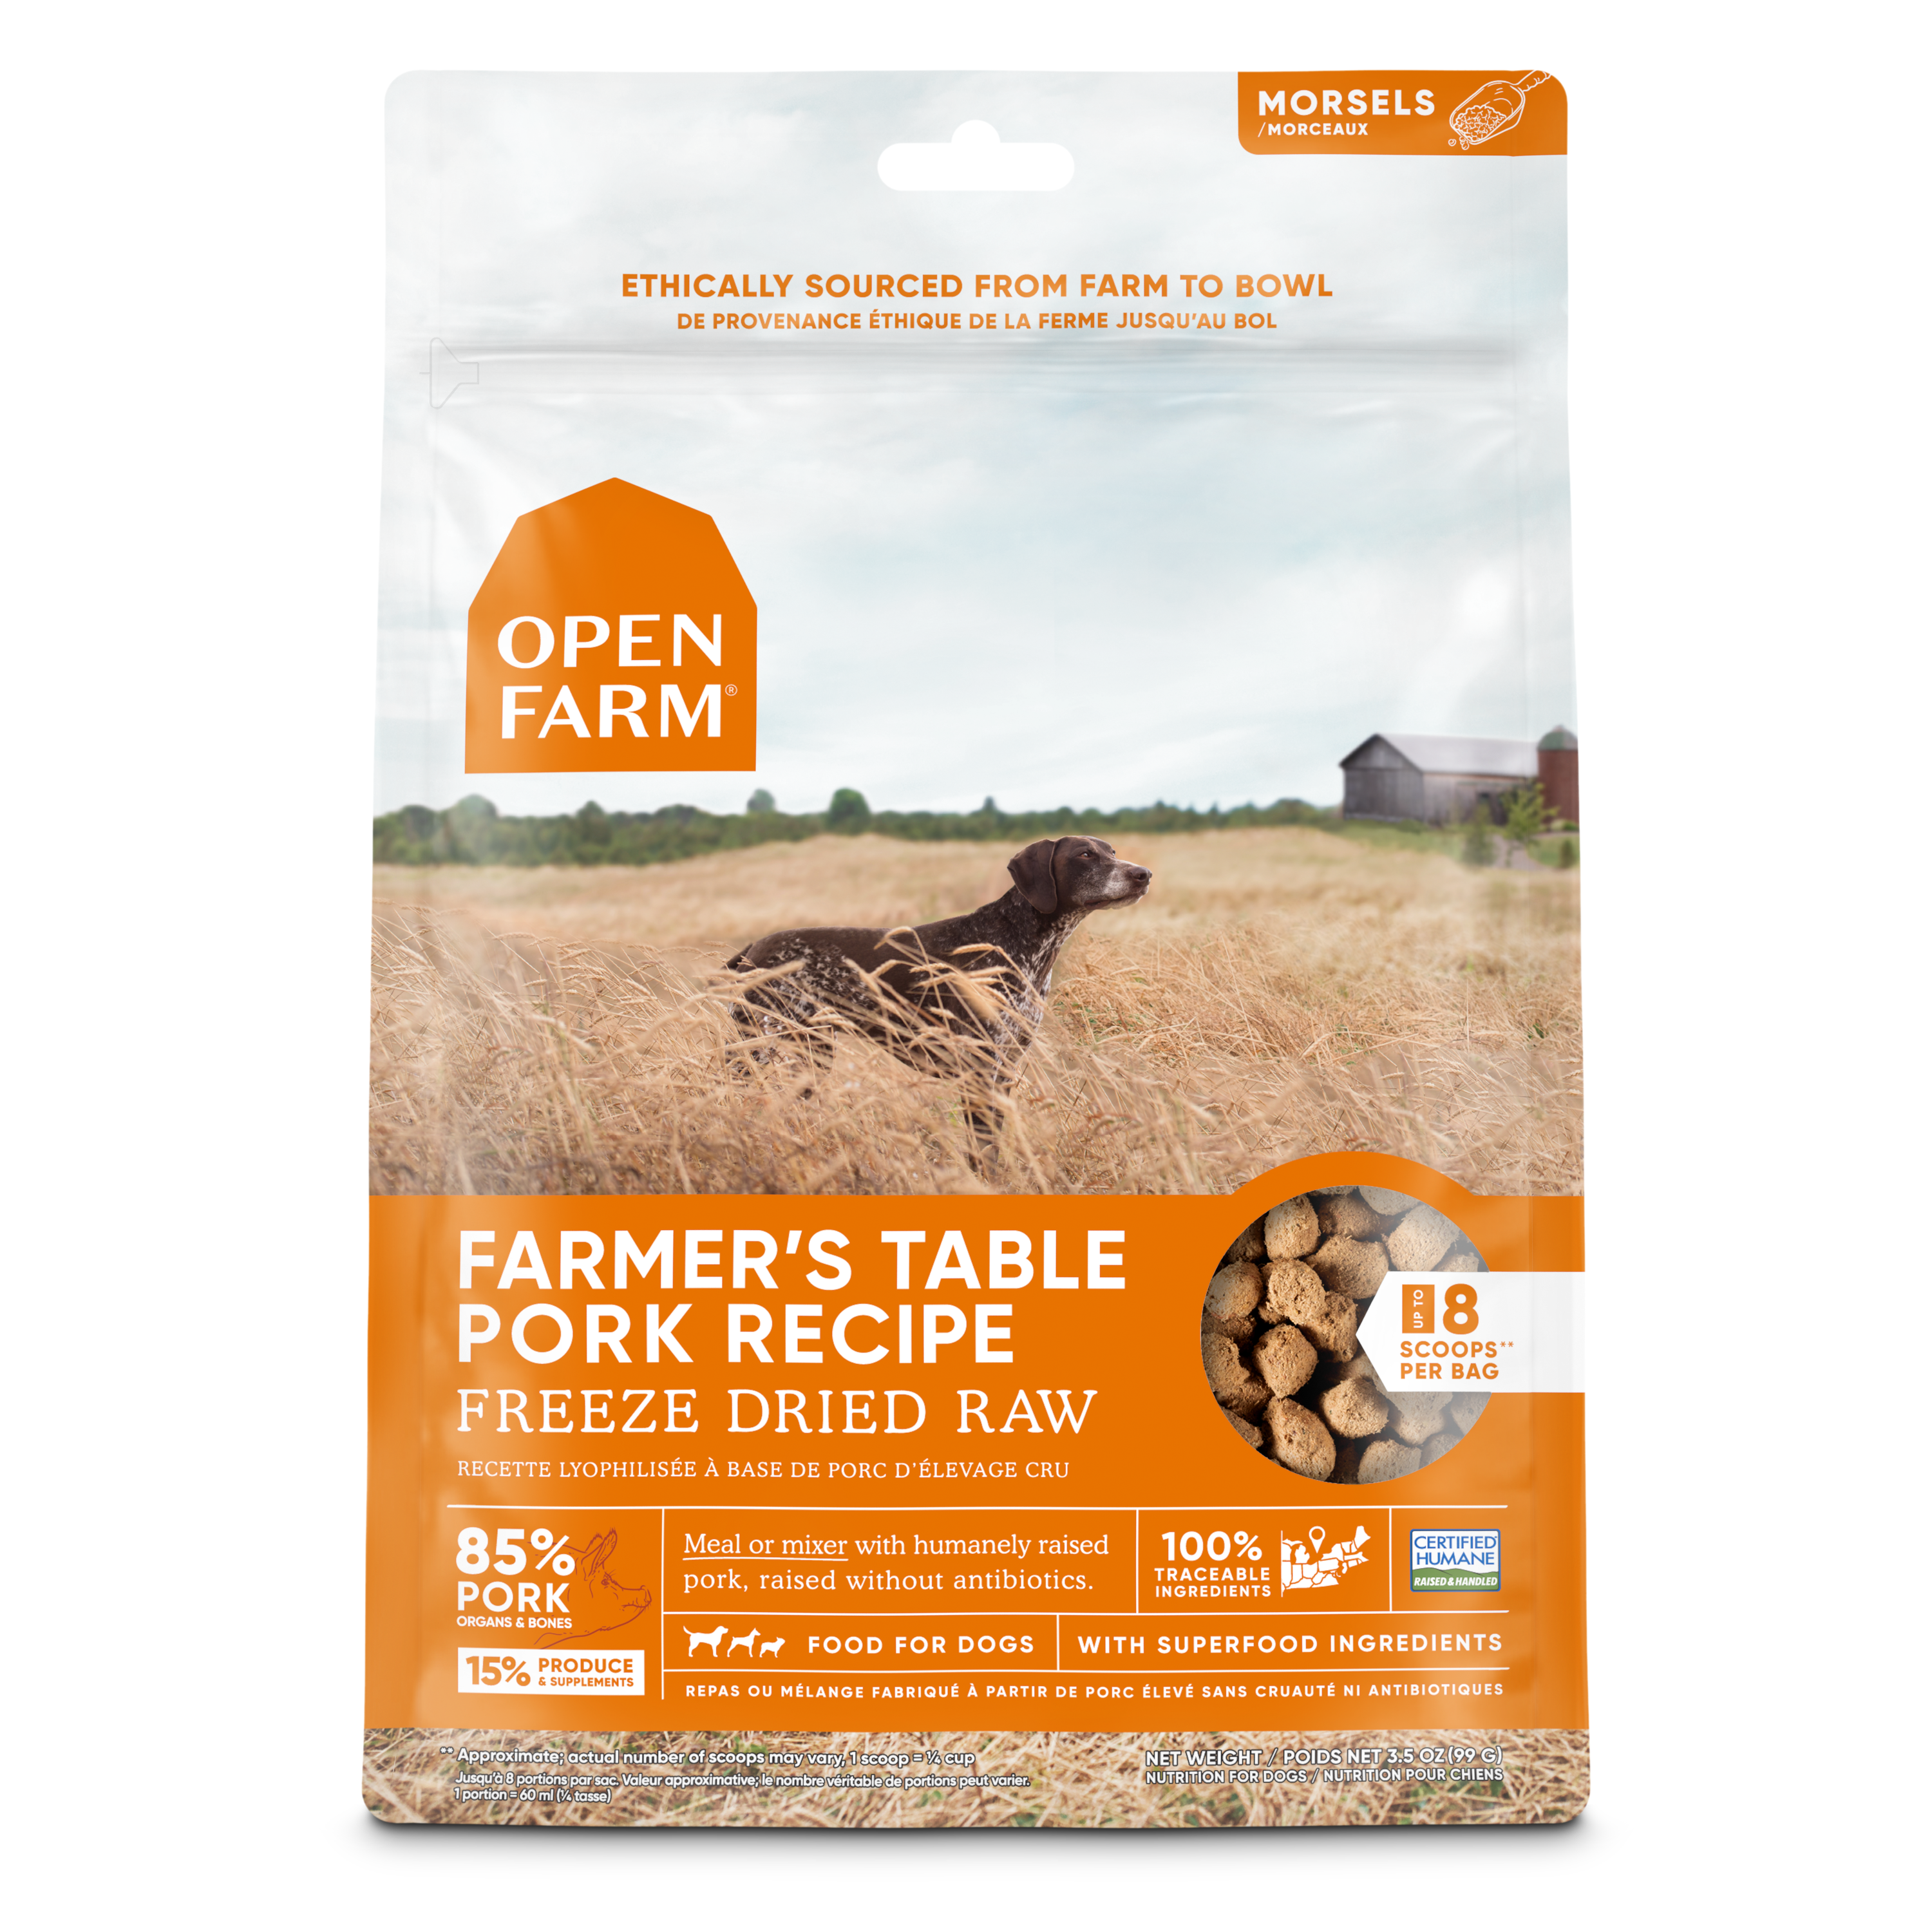 Open Farm Freeze Dried Pork Morsels Image